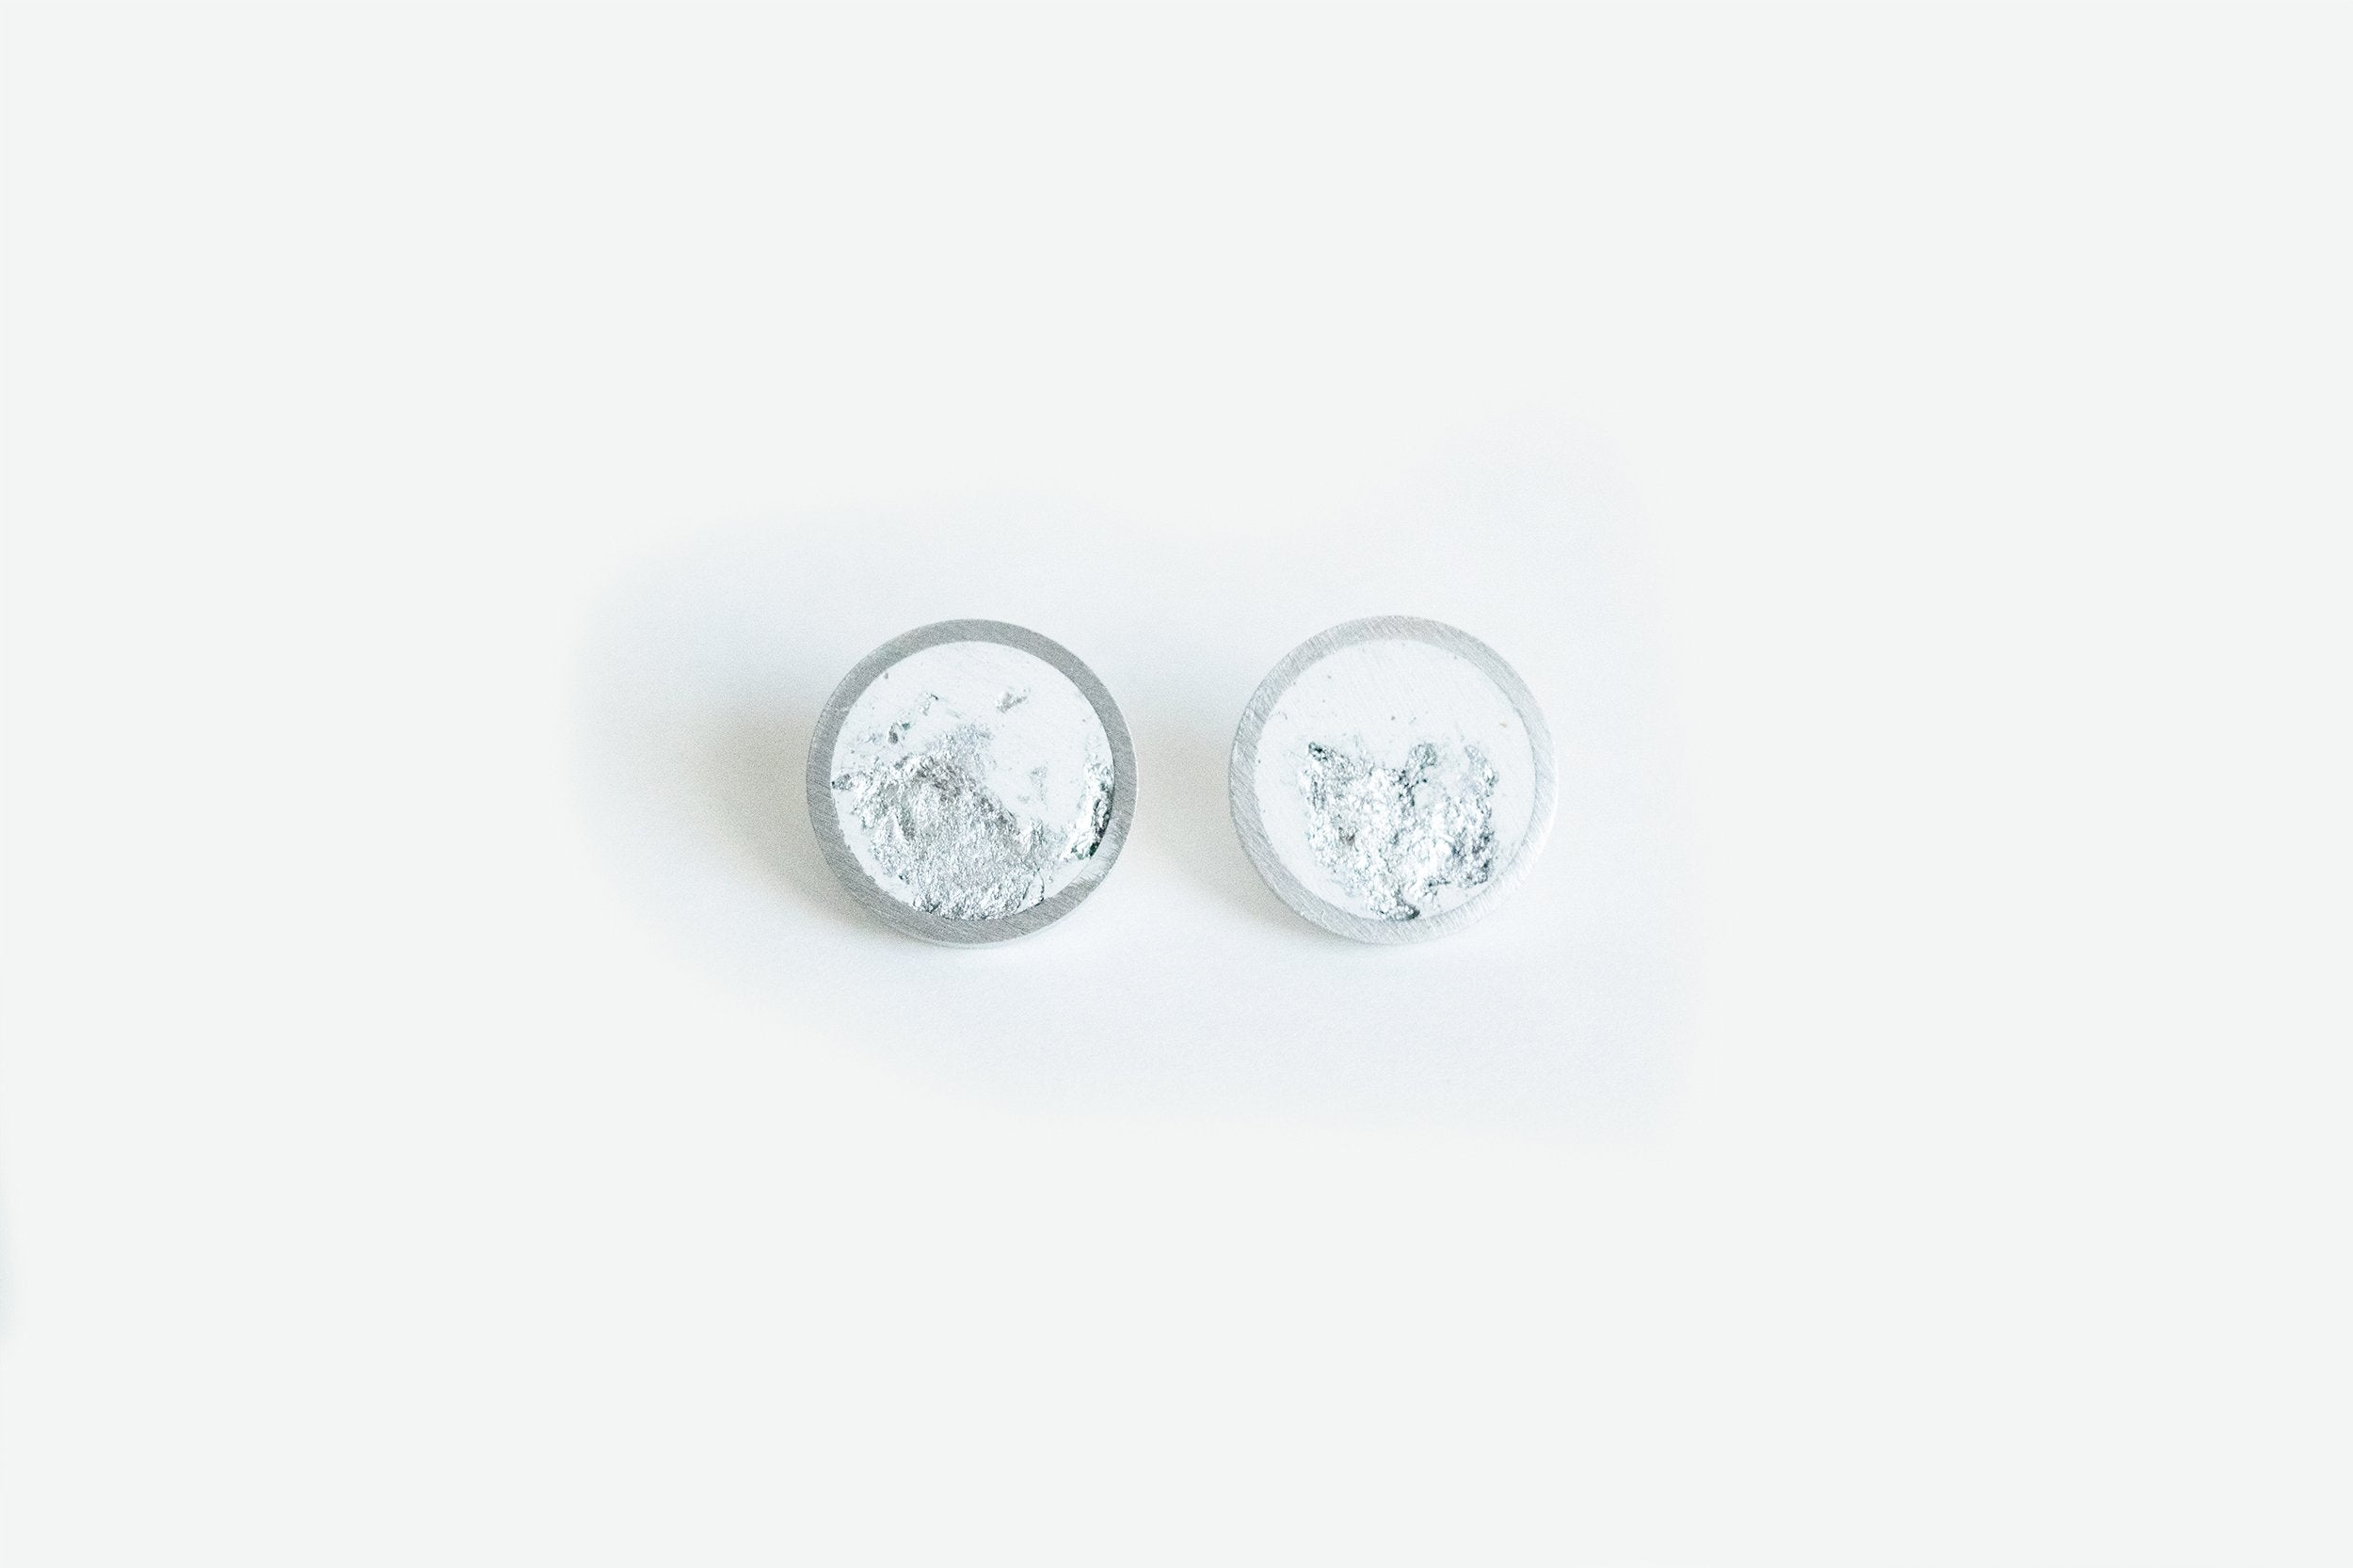 Concrete Framed Earrings - Small Stud